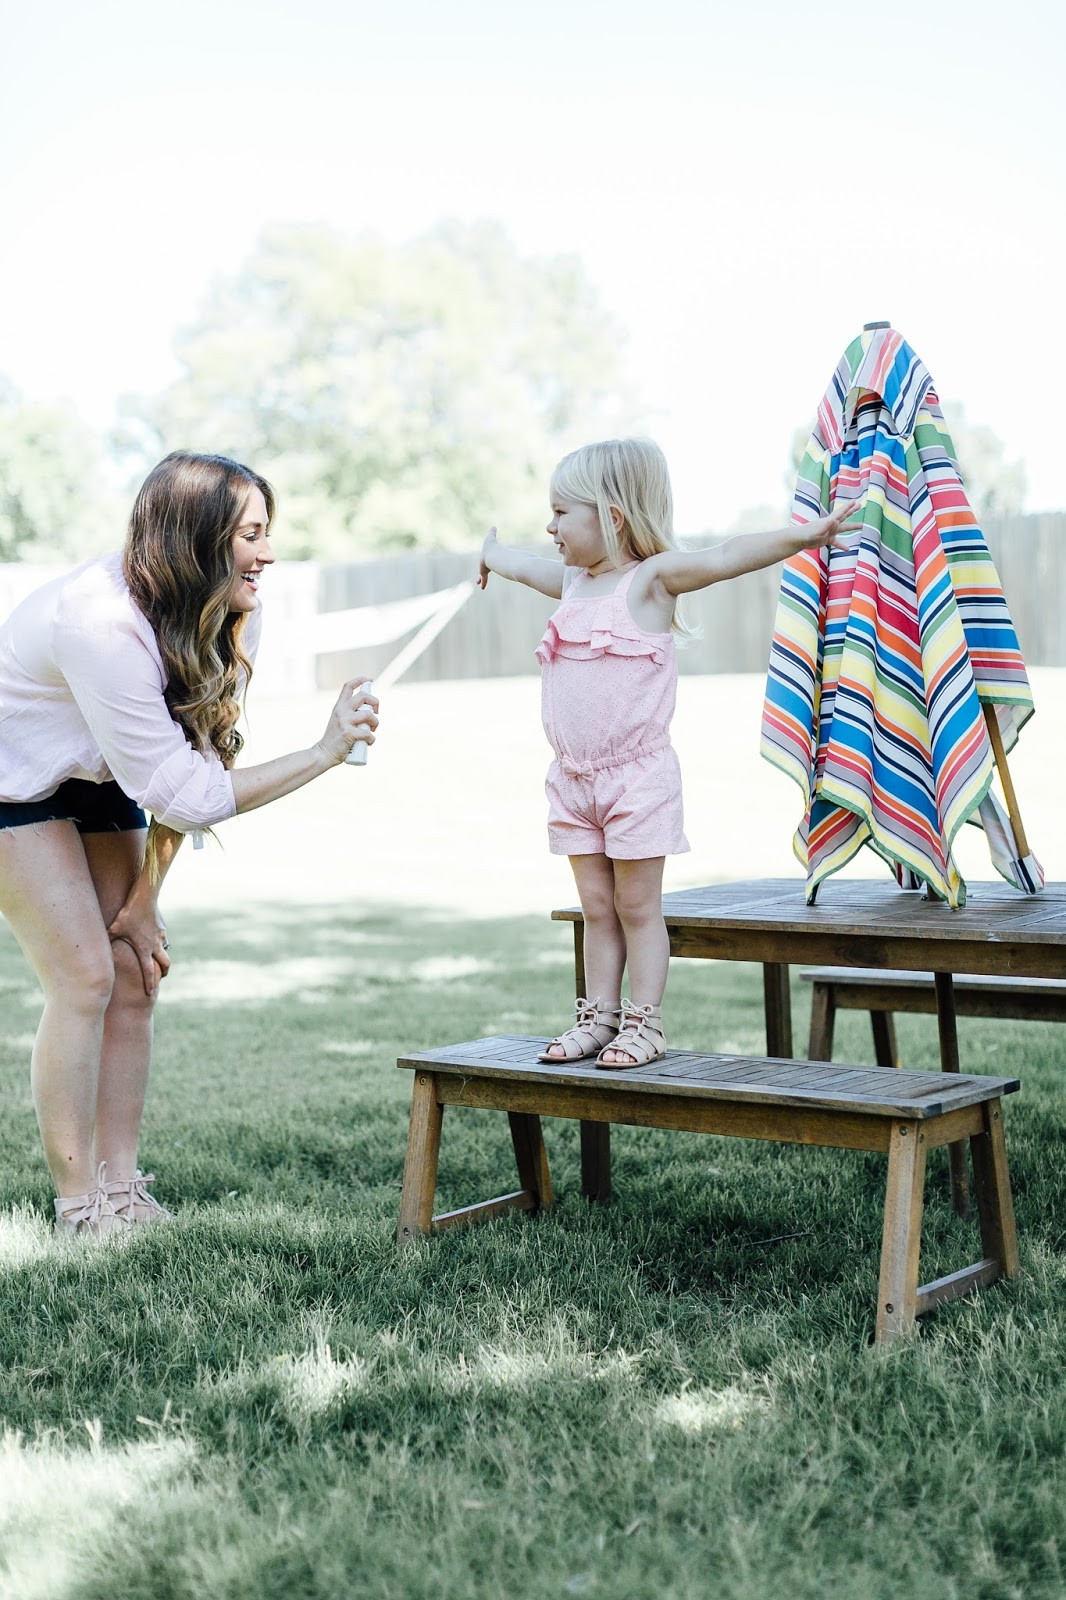 5 Fun Summer Activities For Kids To Do Outdoors by lifestyle blogger Laura of Walking in Memphis in High Heels